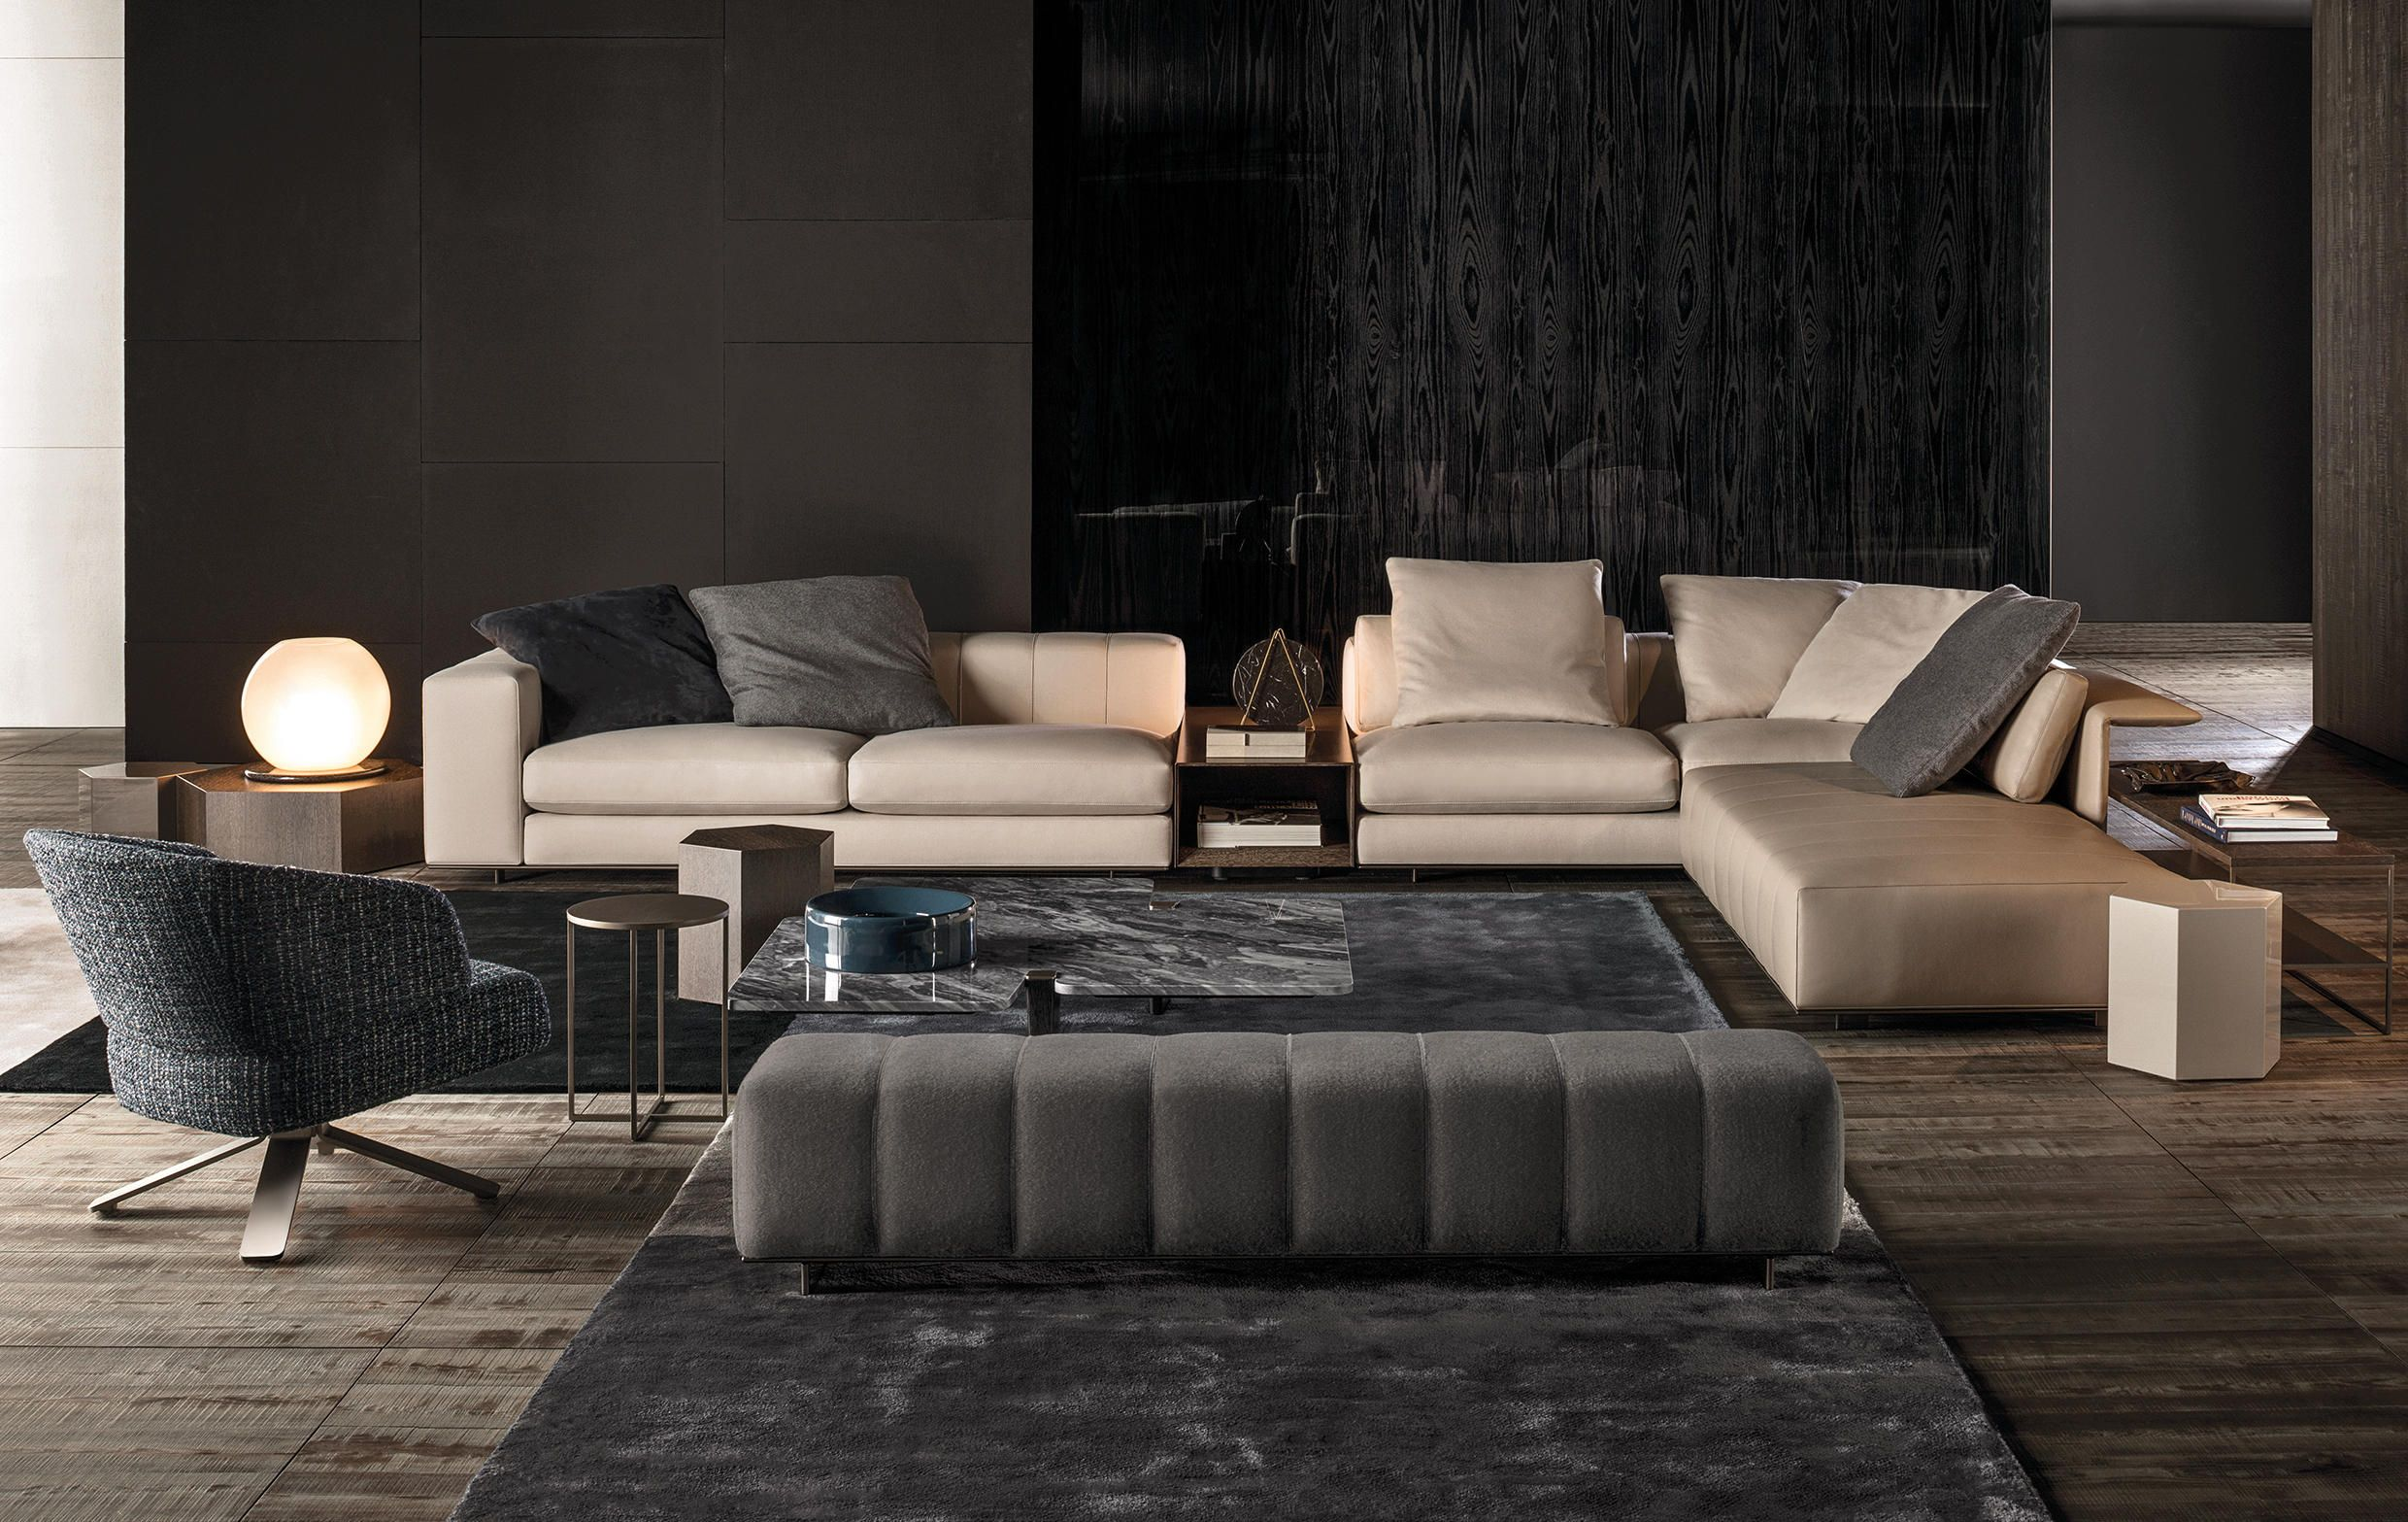 Freeman Duvet Sofa by Minotti | FFE | Sofa | Pinterest ...